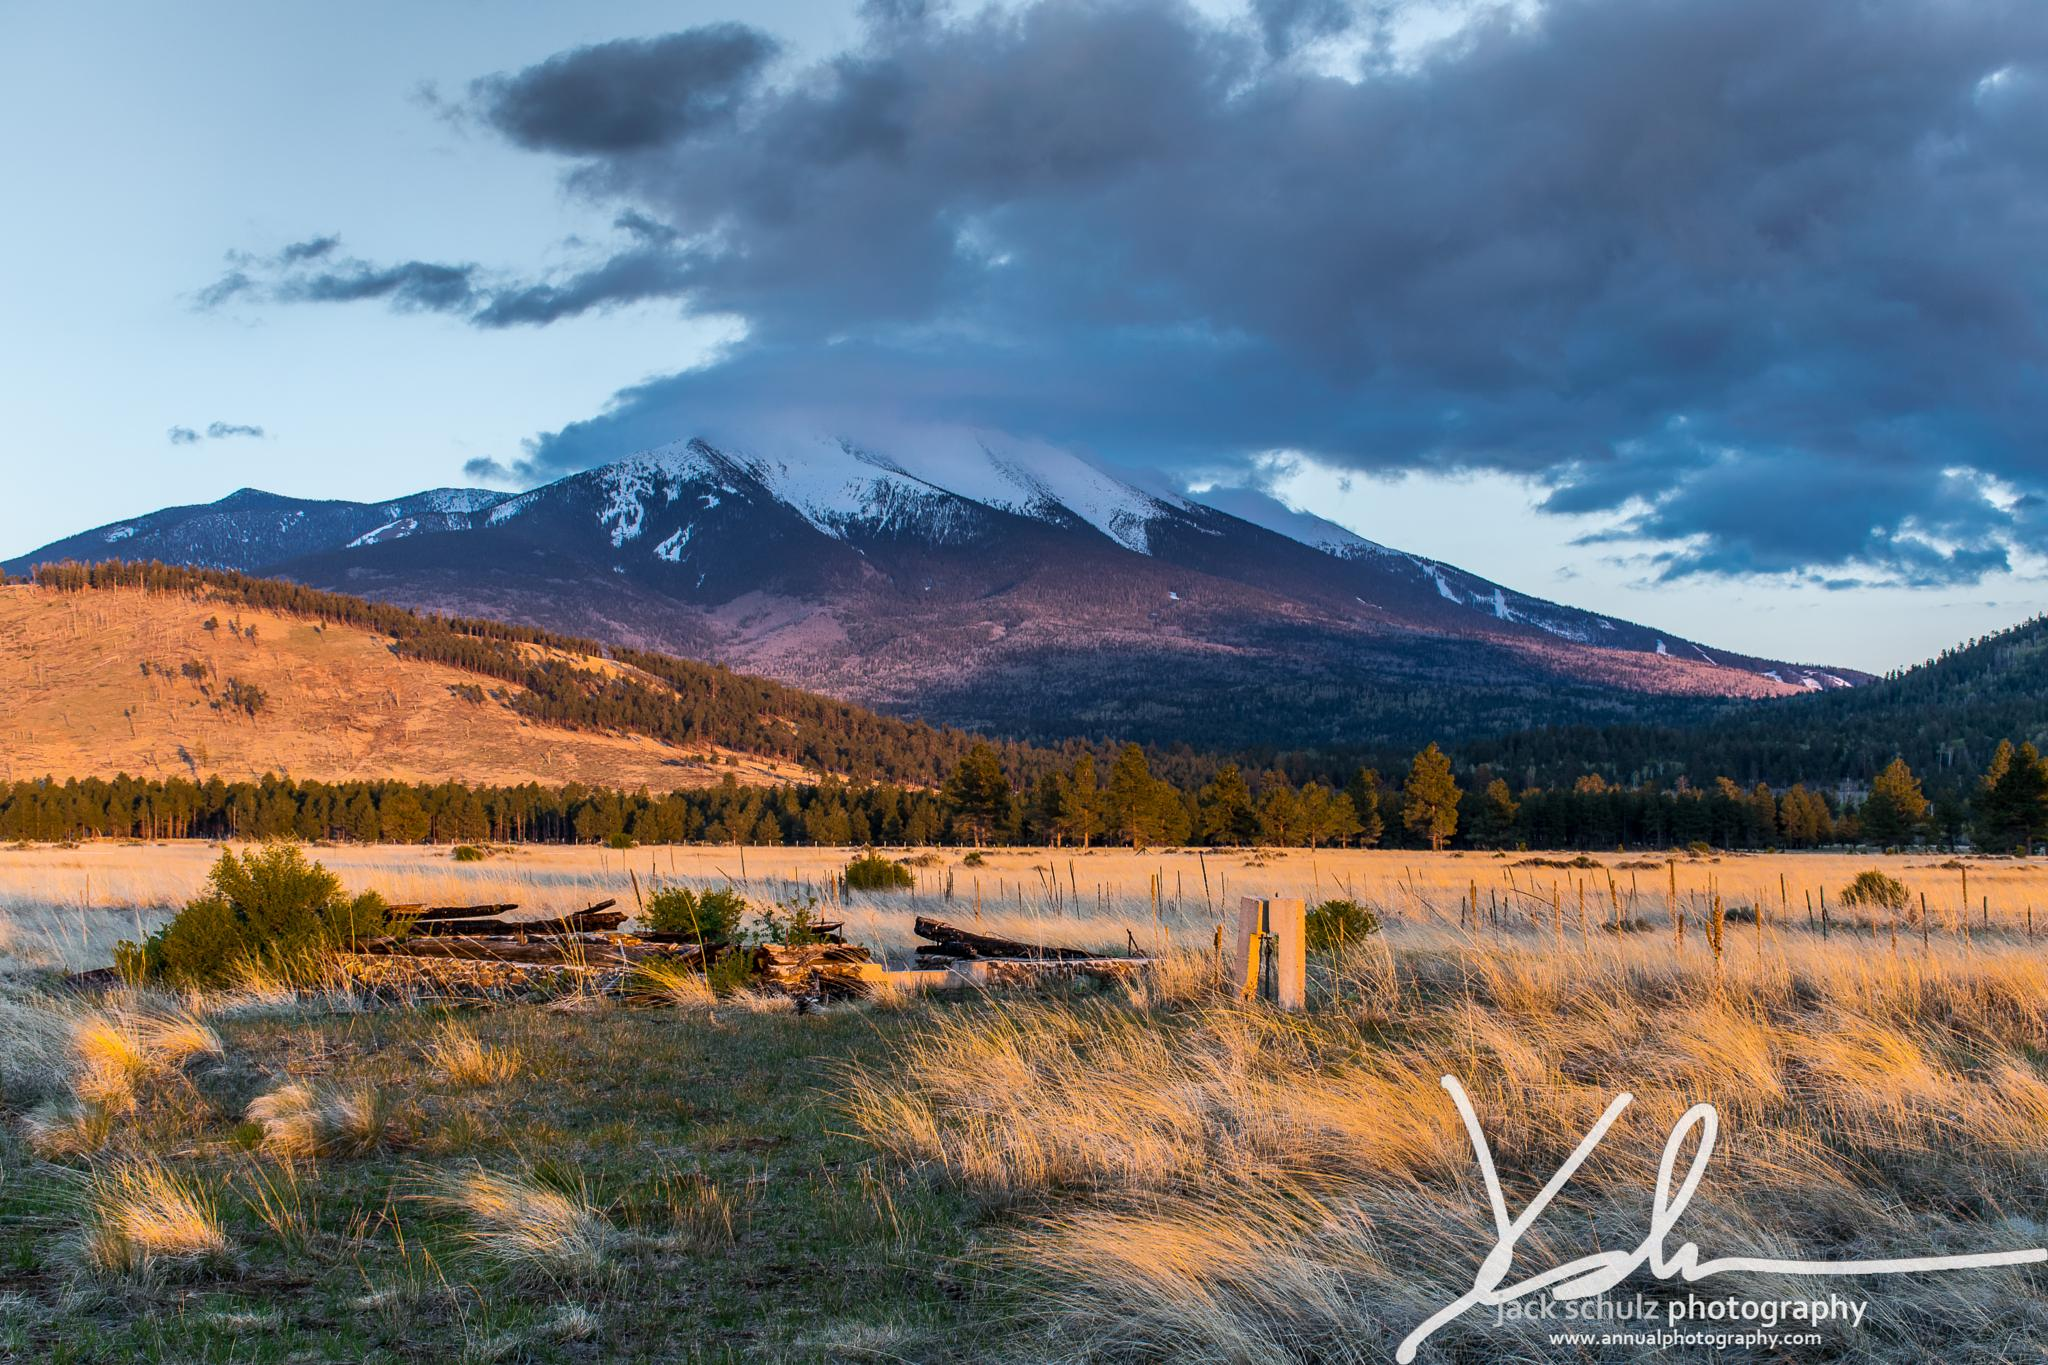 Snow capped majesty at sunset by jschulzphotography